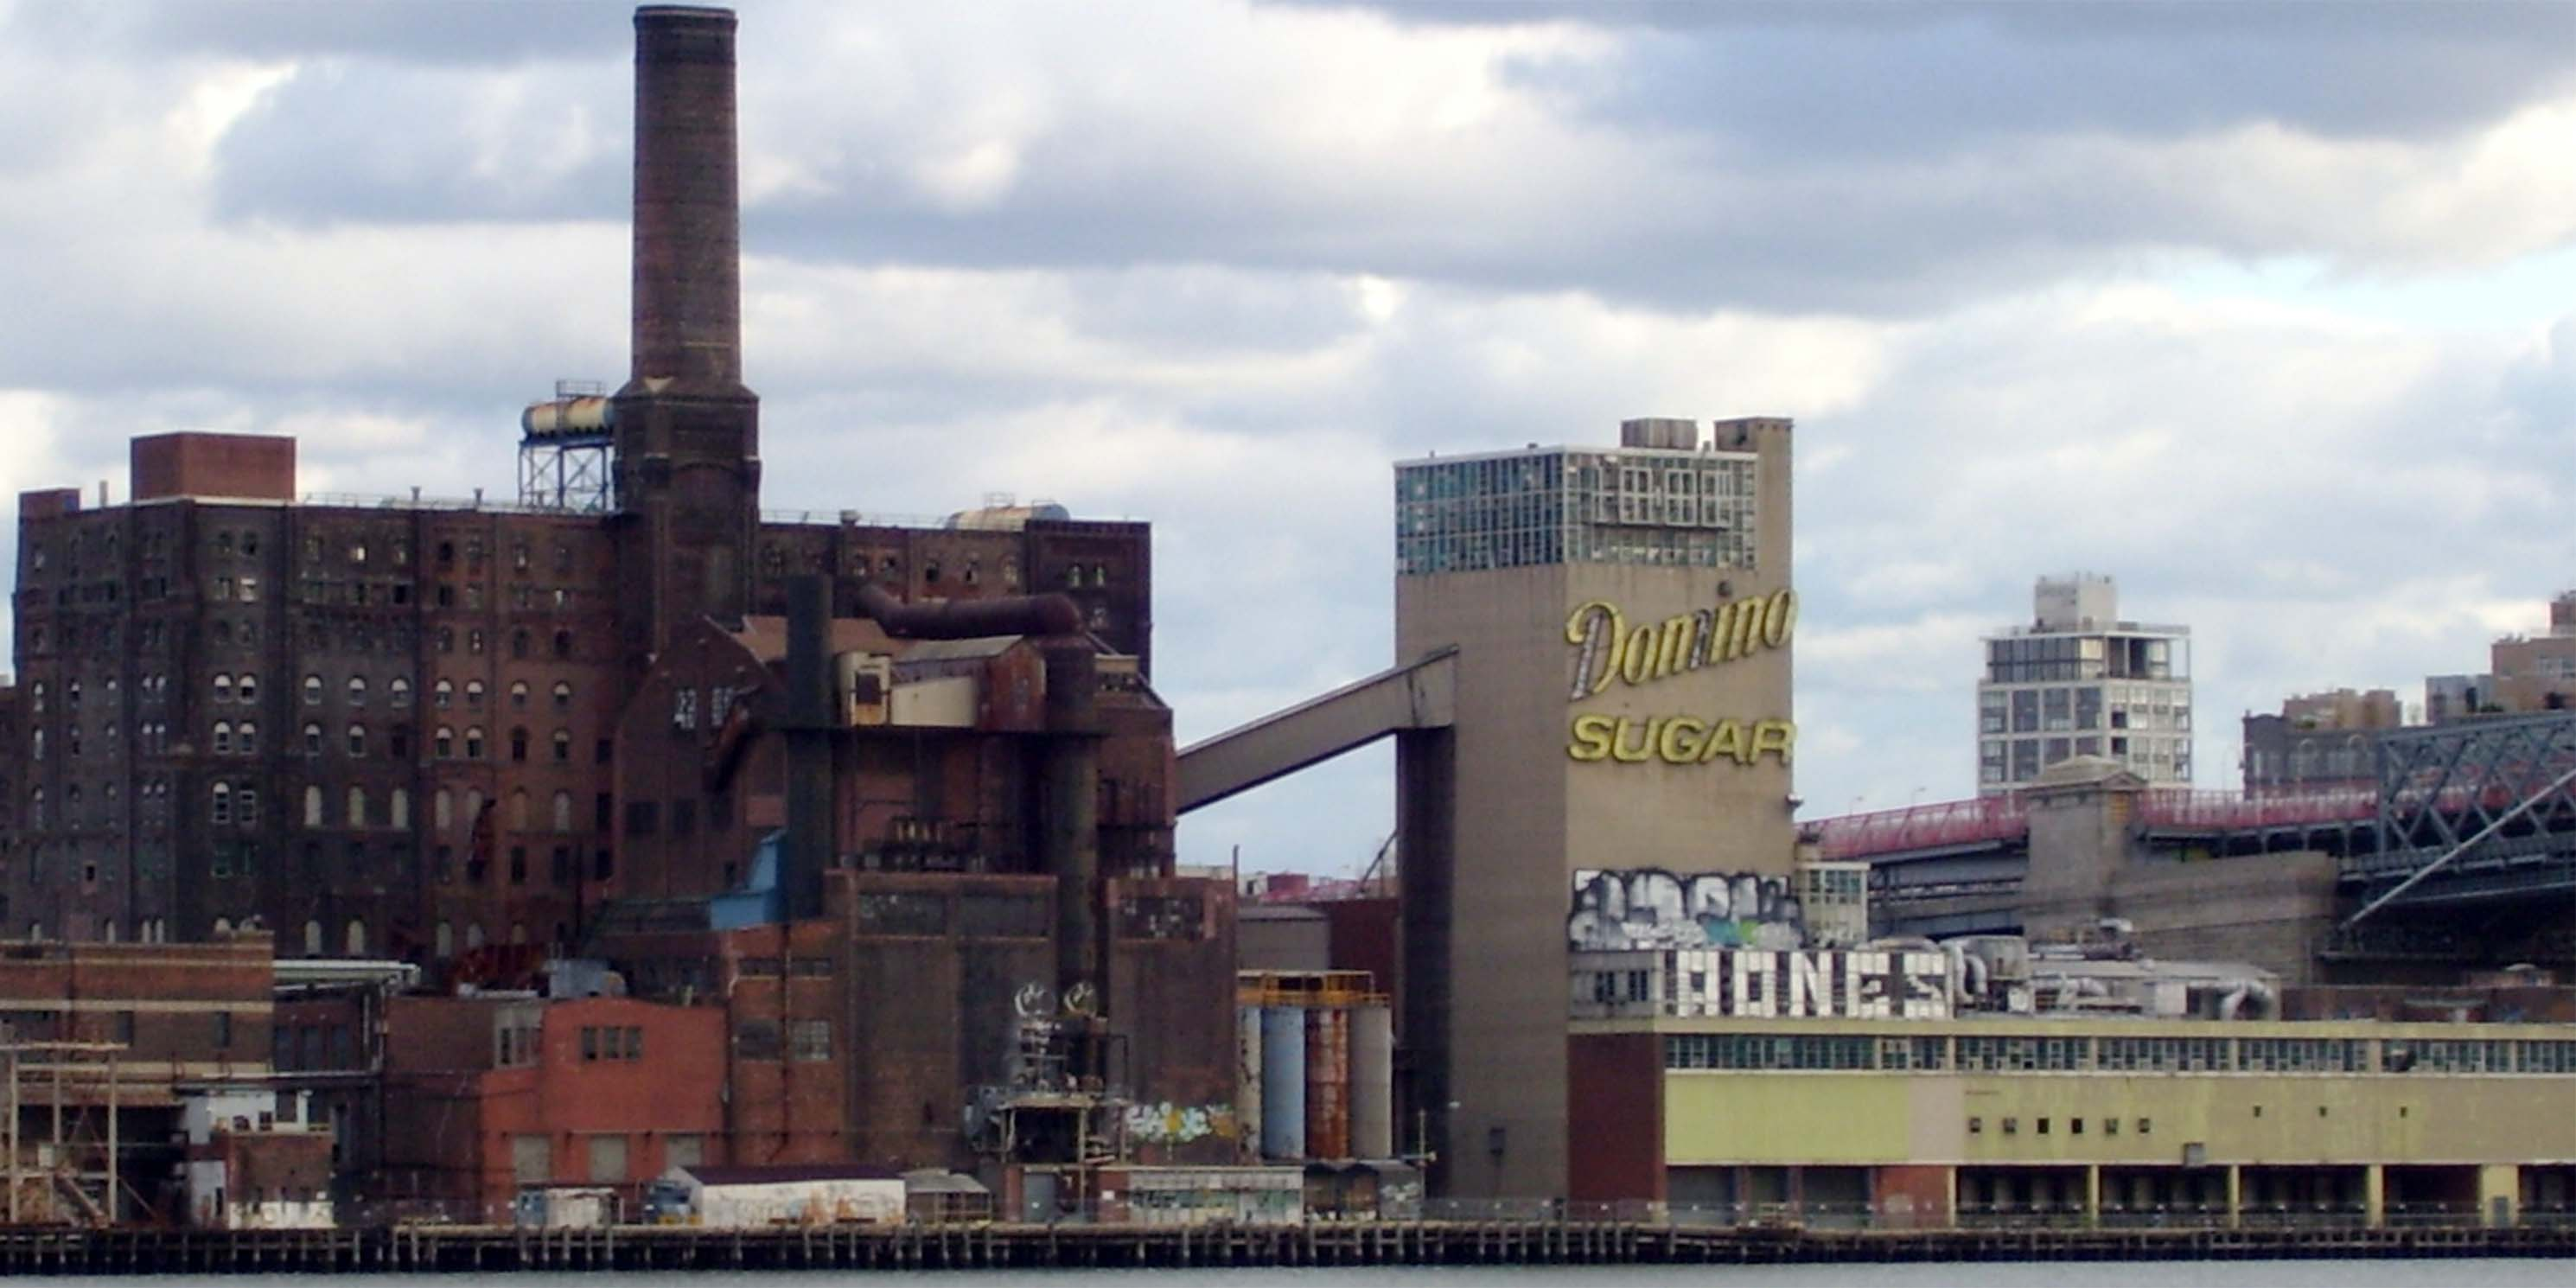 exterior of the Domino Sugar refinery